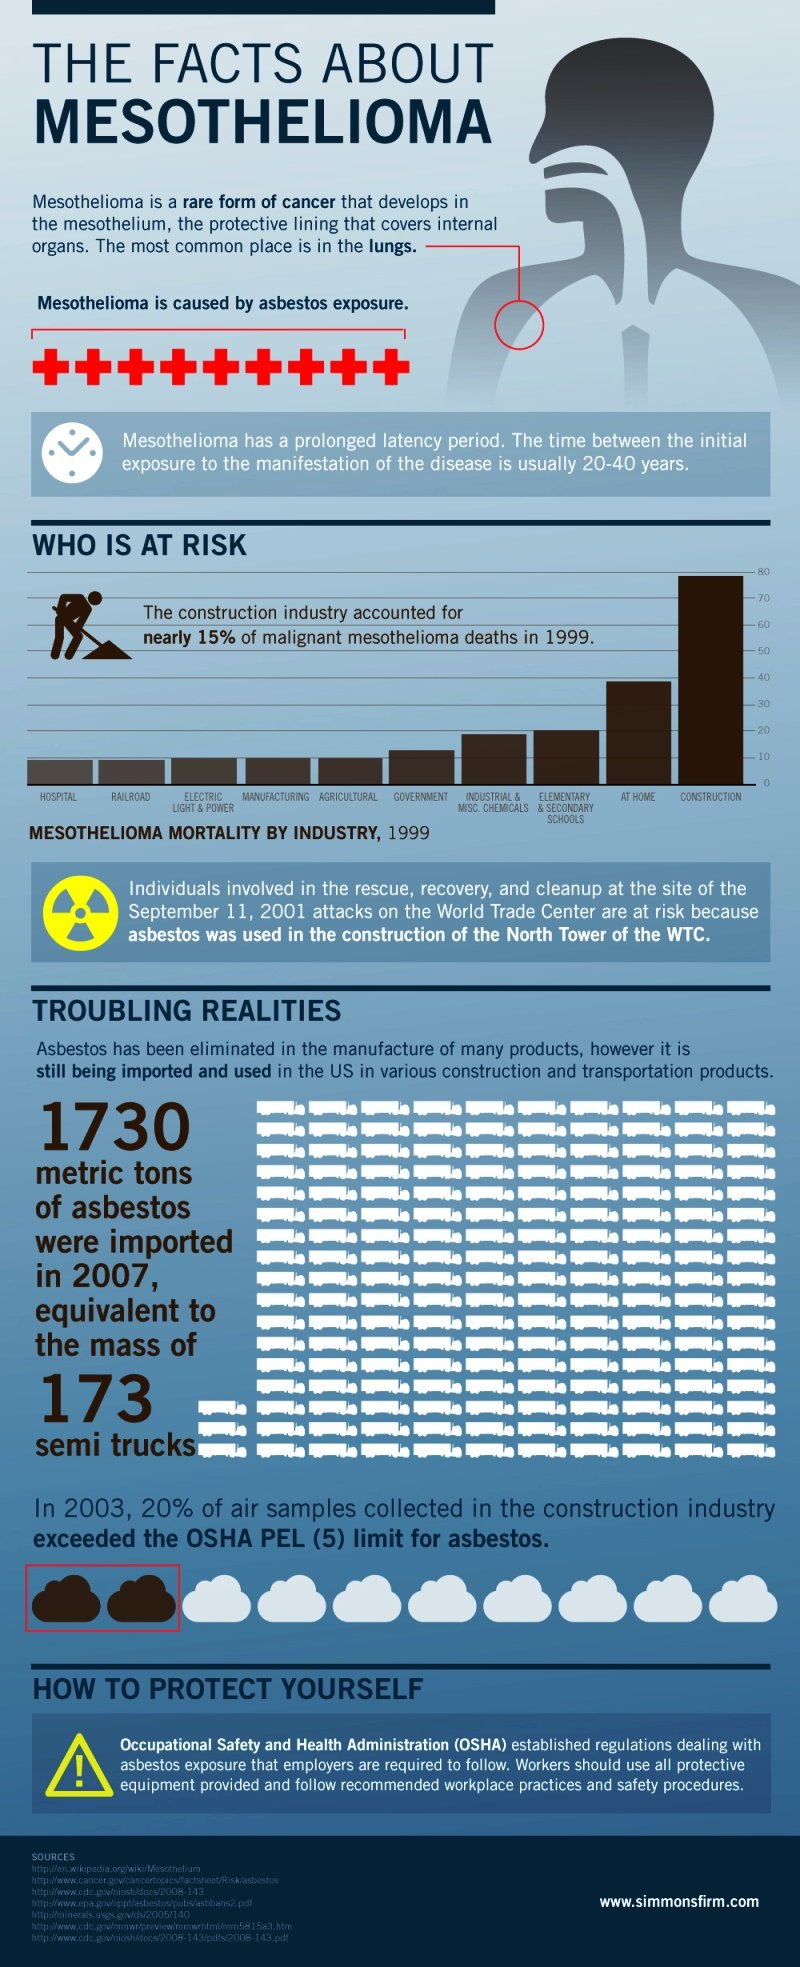 facts about mesothelioma #infographic